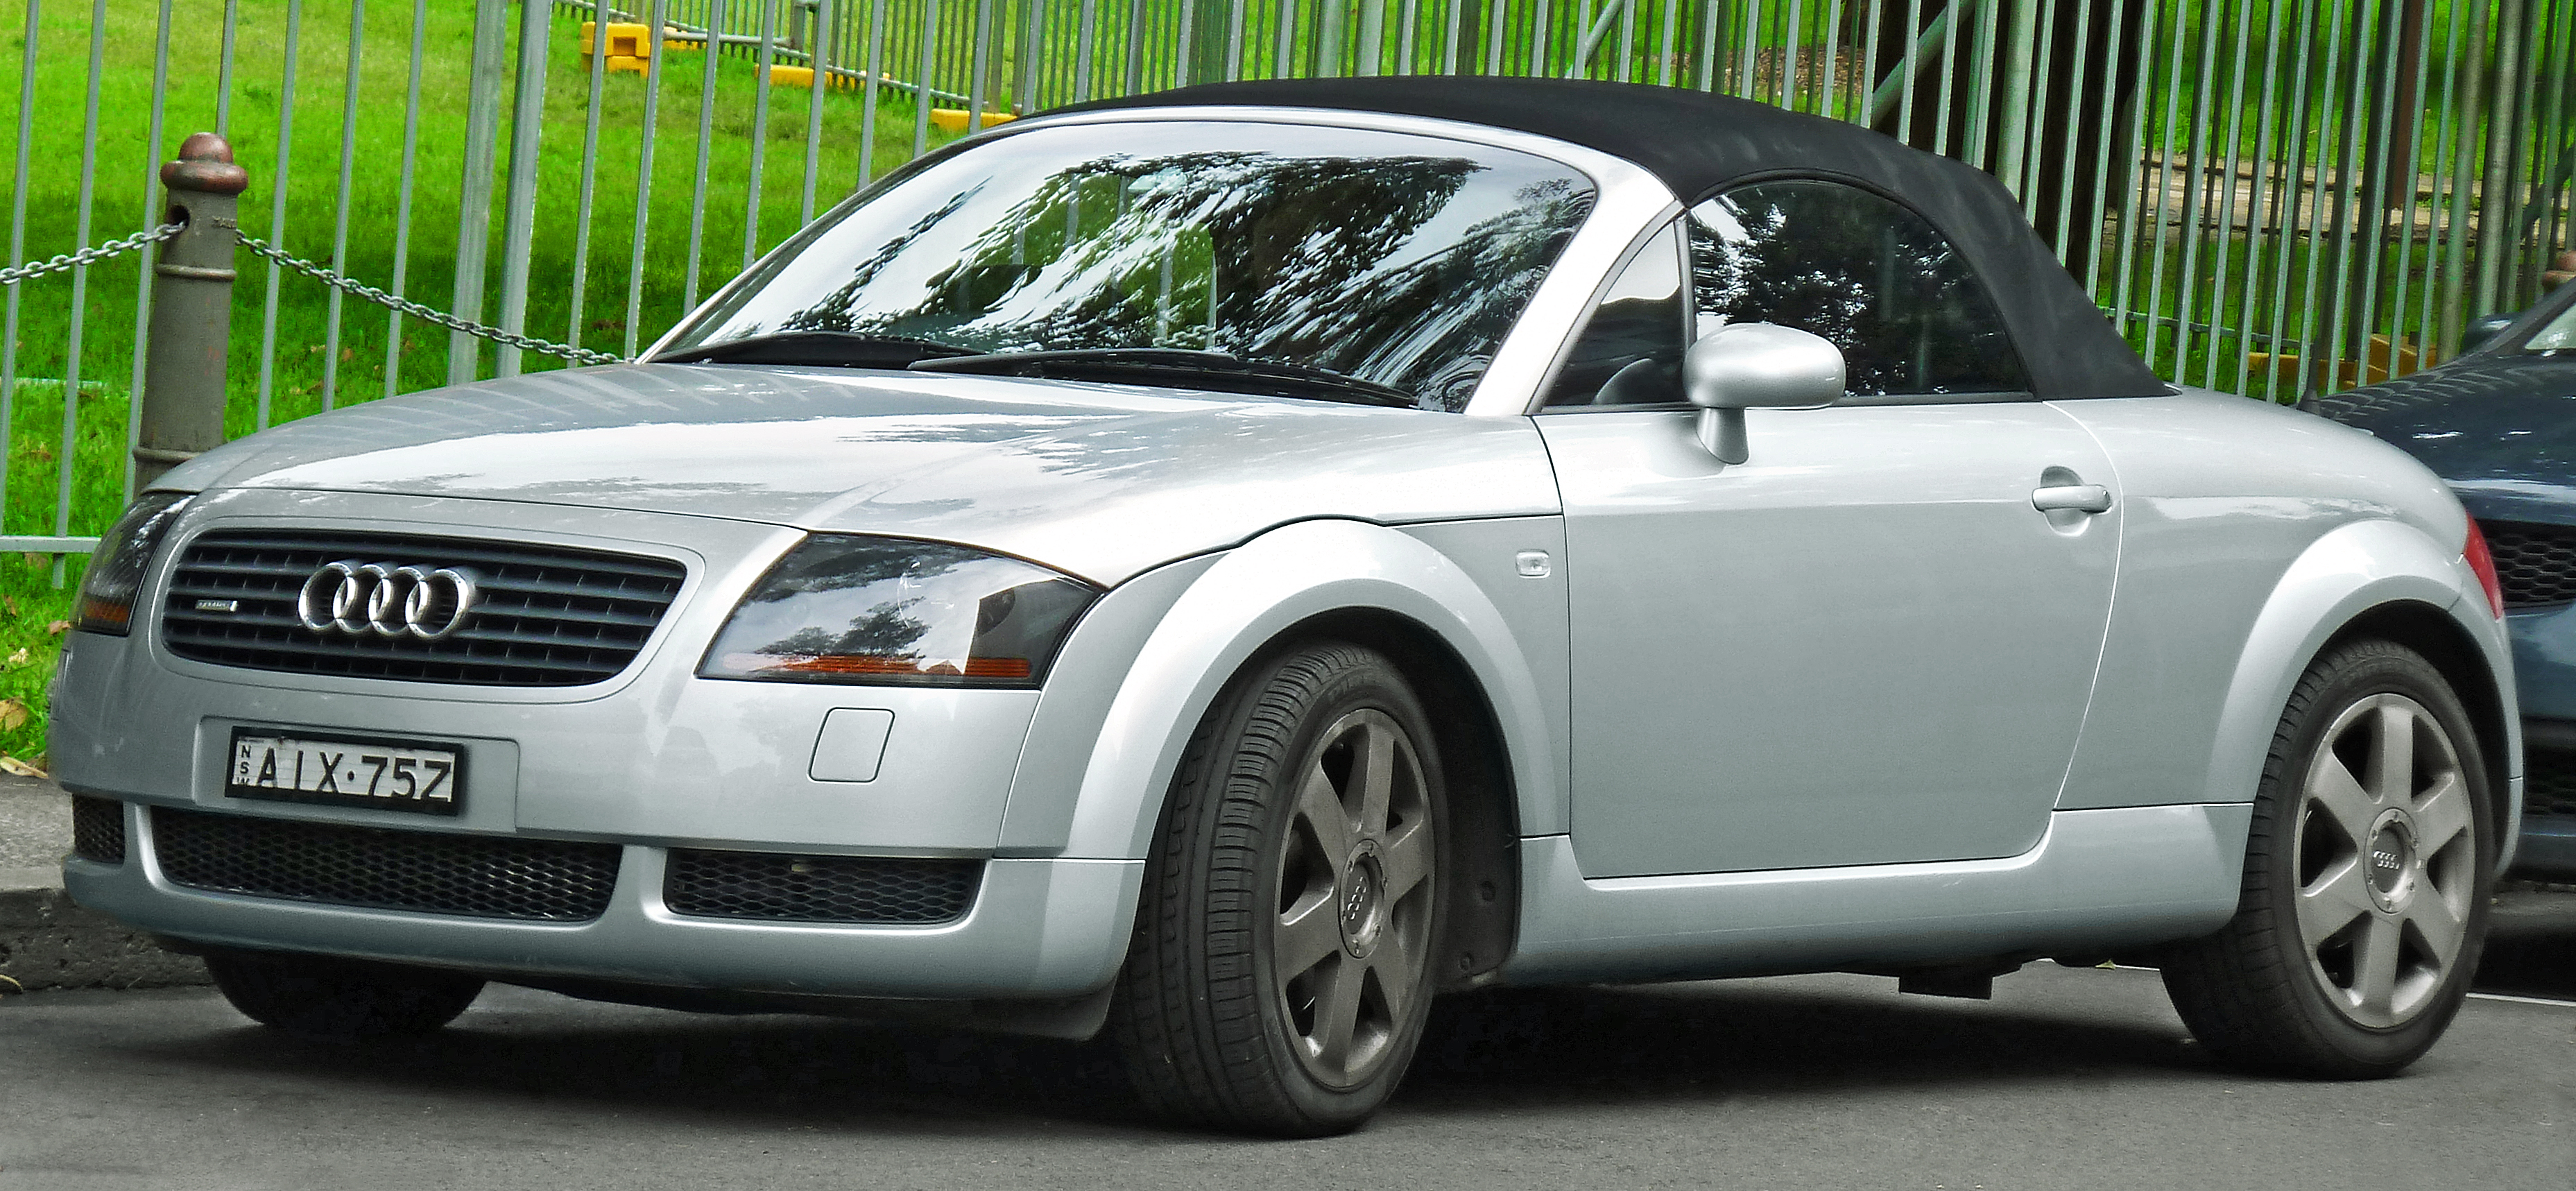 file 2000 audi tt 8n 1 8 t quattro roadster 2011 12 06 wikimedia commons. Black Bedroom Furniture Sets. Home Design Ideas